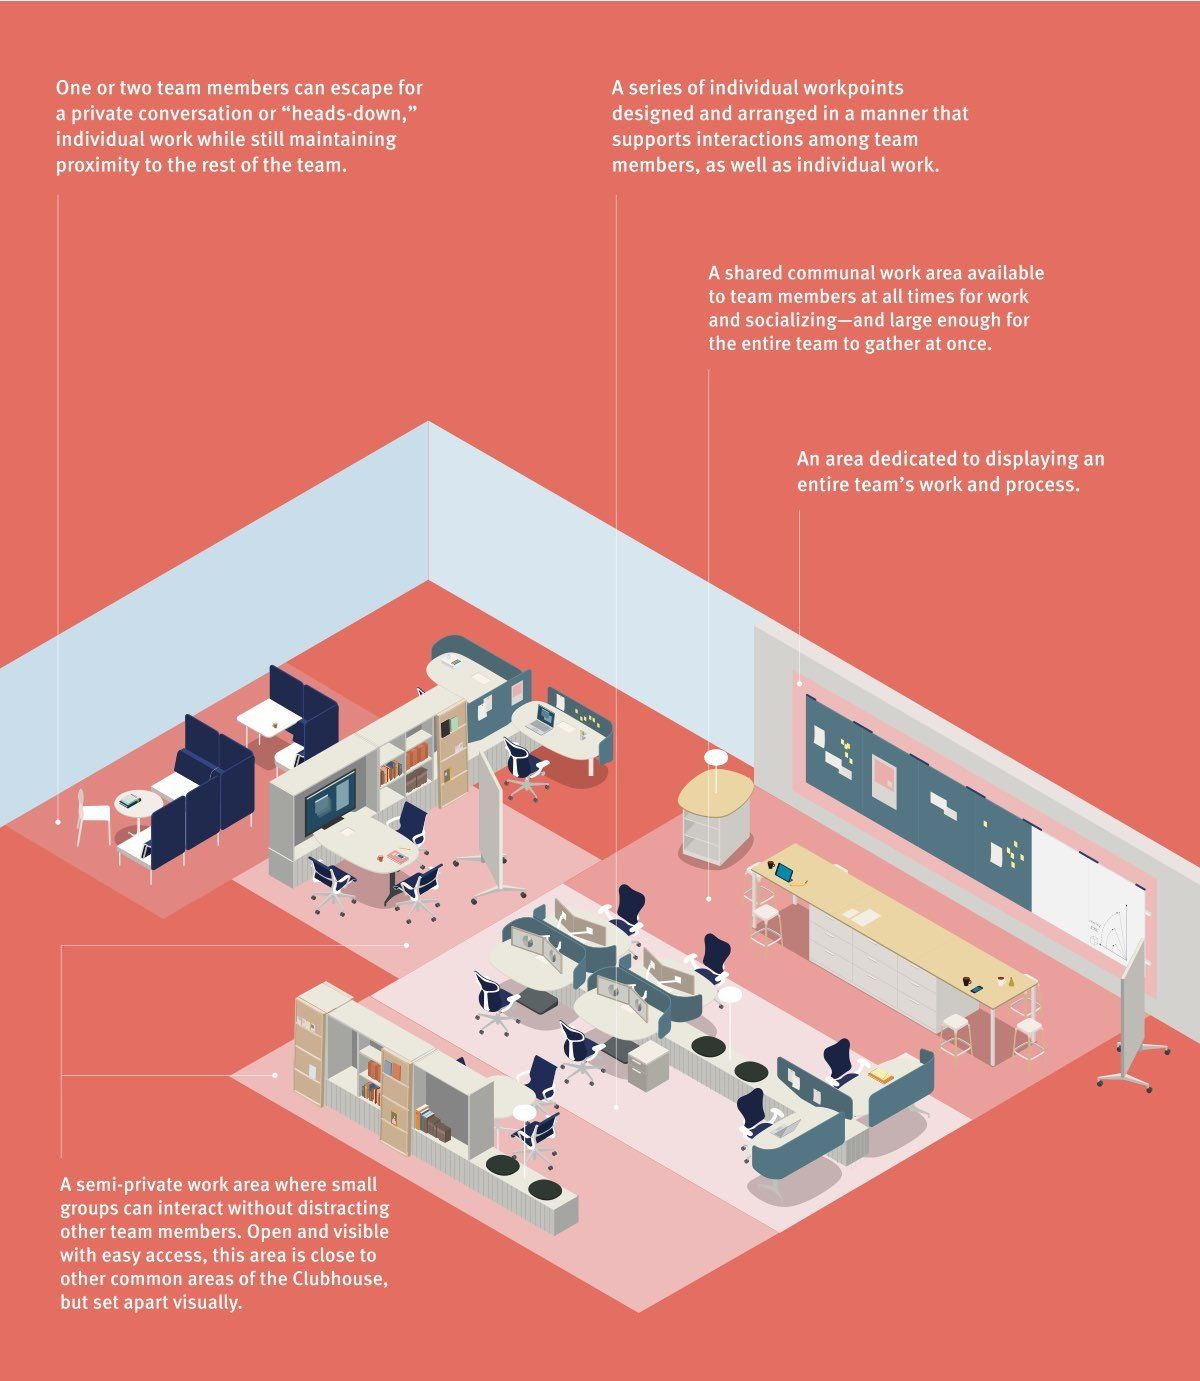 A Computerized Image Showing Advantages Of A Particular Office Setup Innovation Improvisation Office Space Design